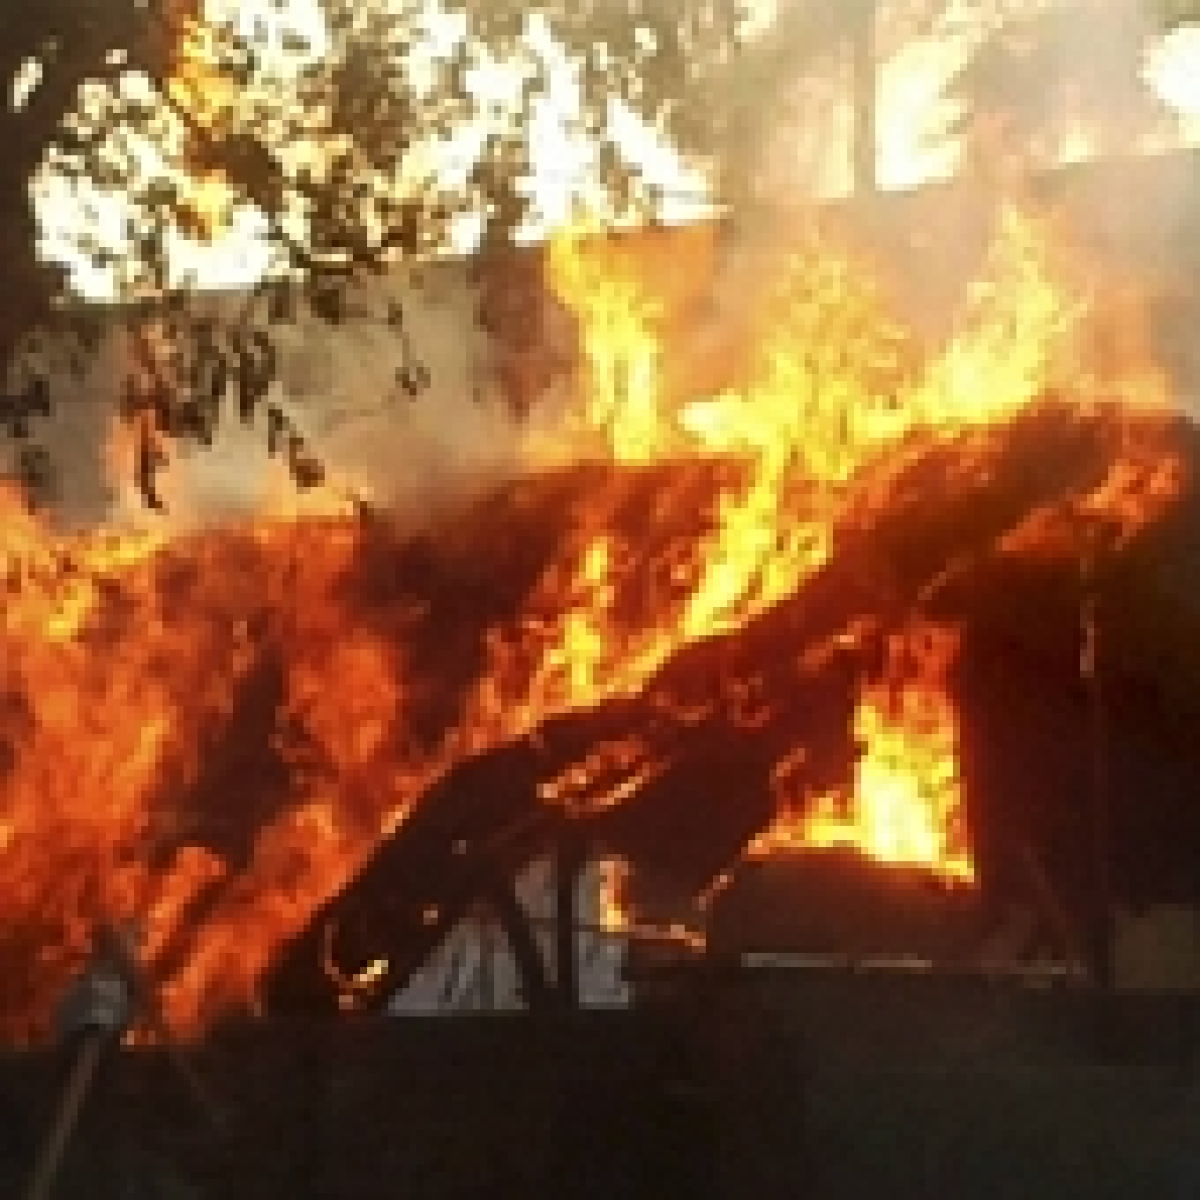 Mumbai: Two fire incidents reported in Thane district